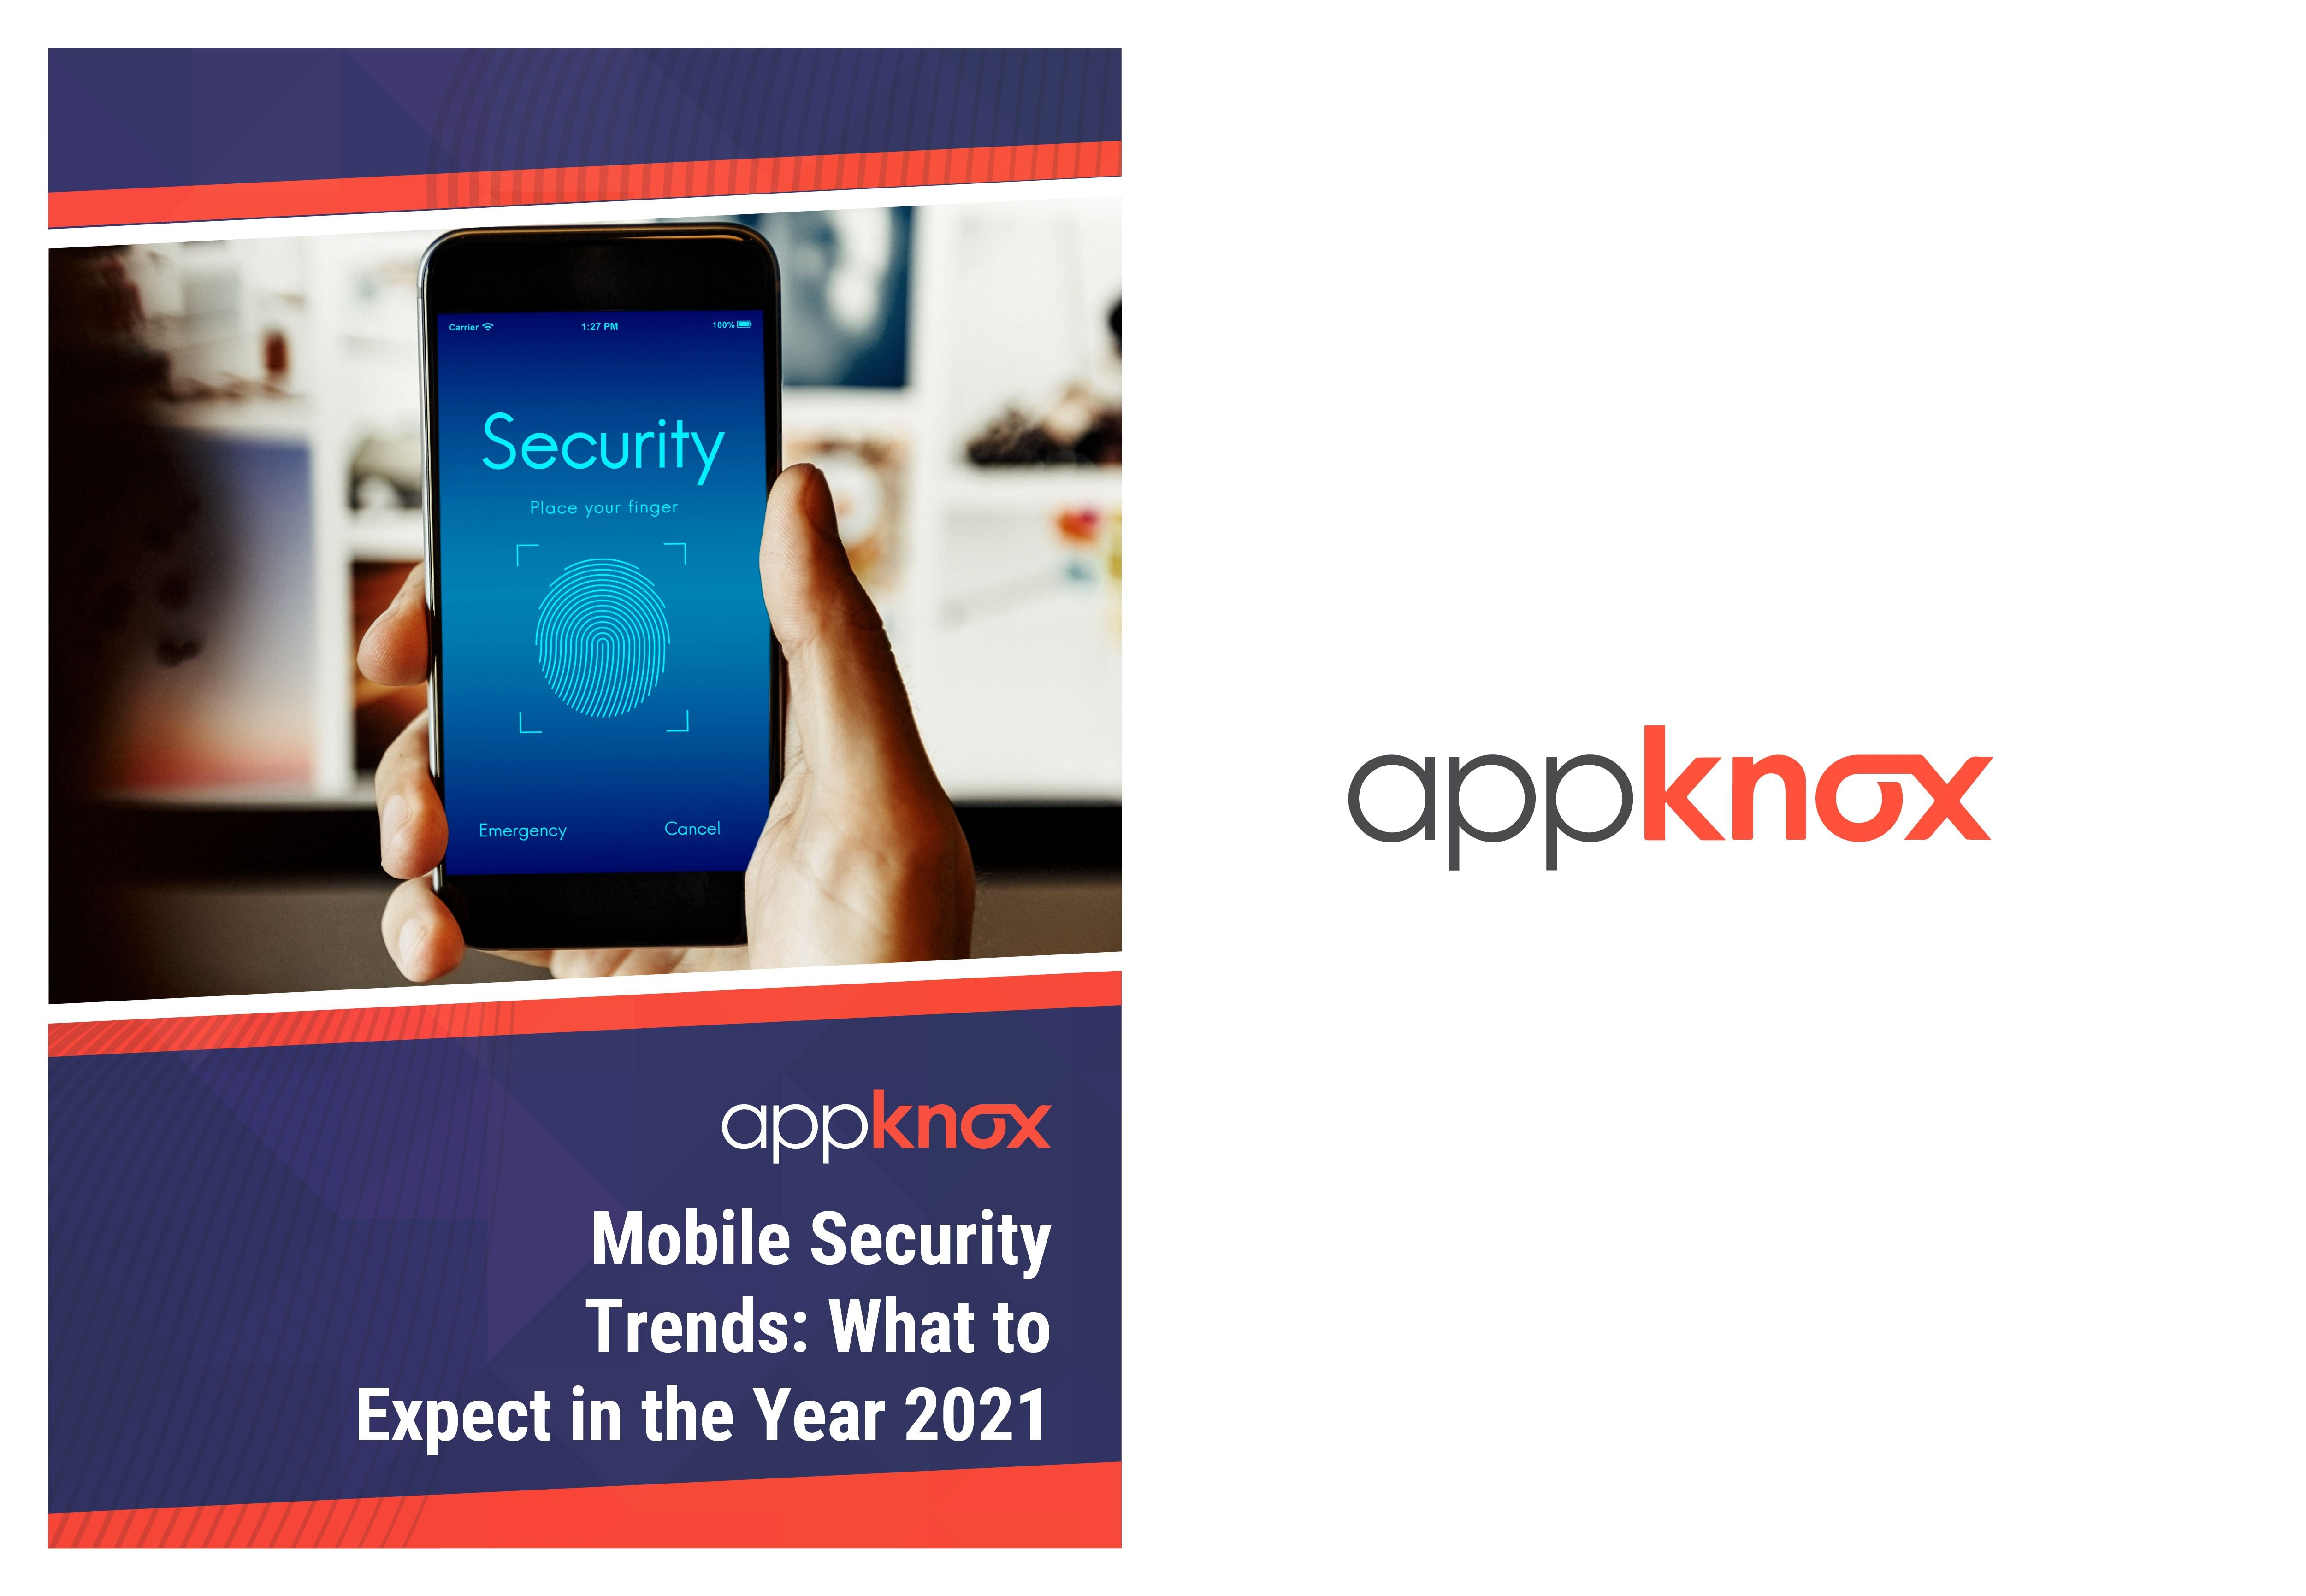 Mobile Security trends in 2021